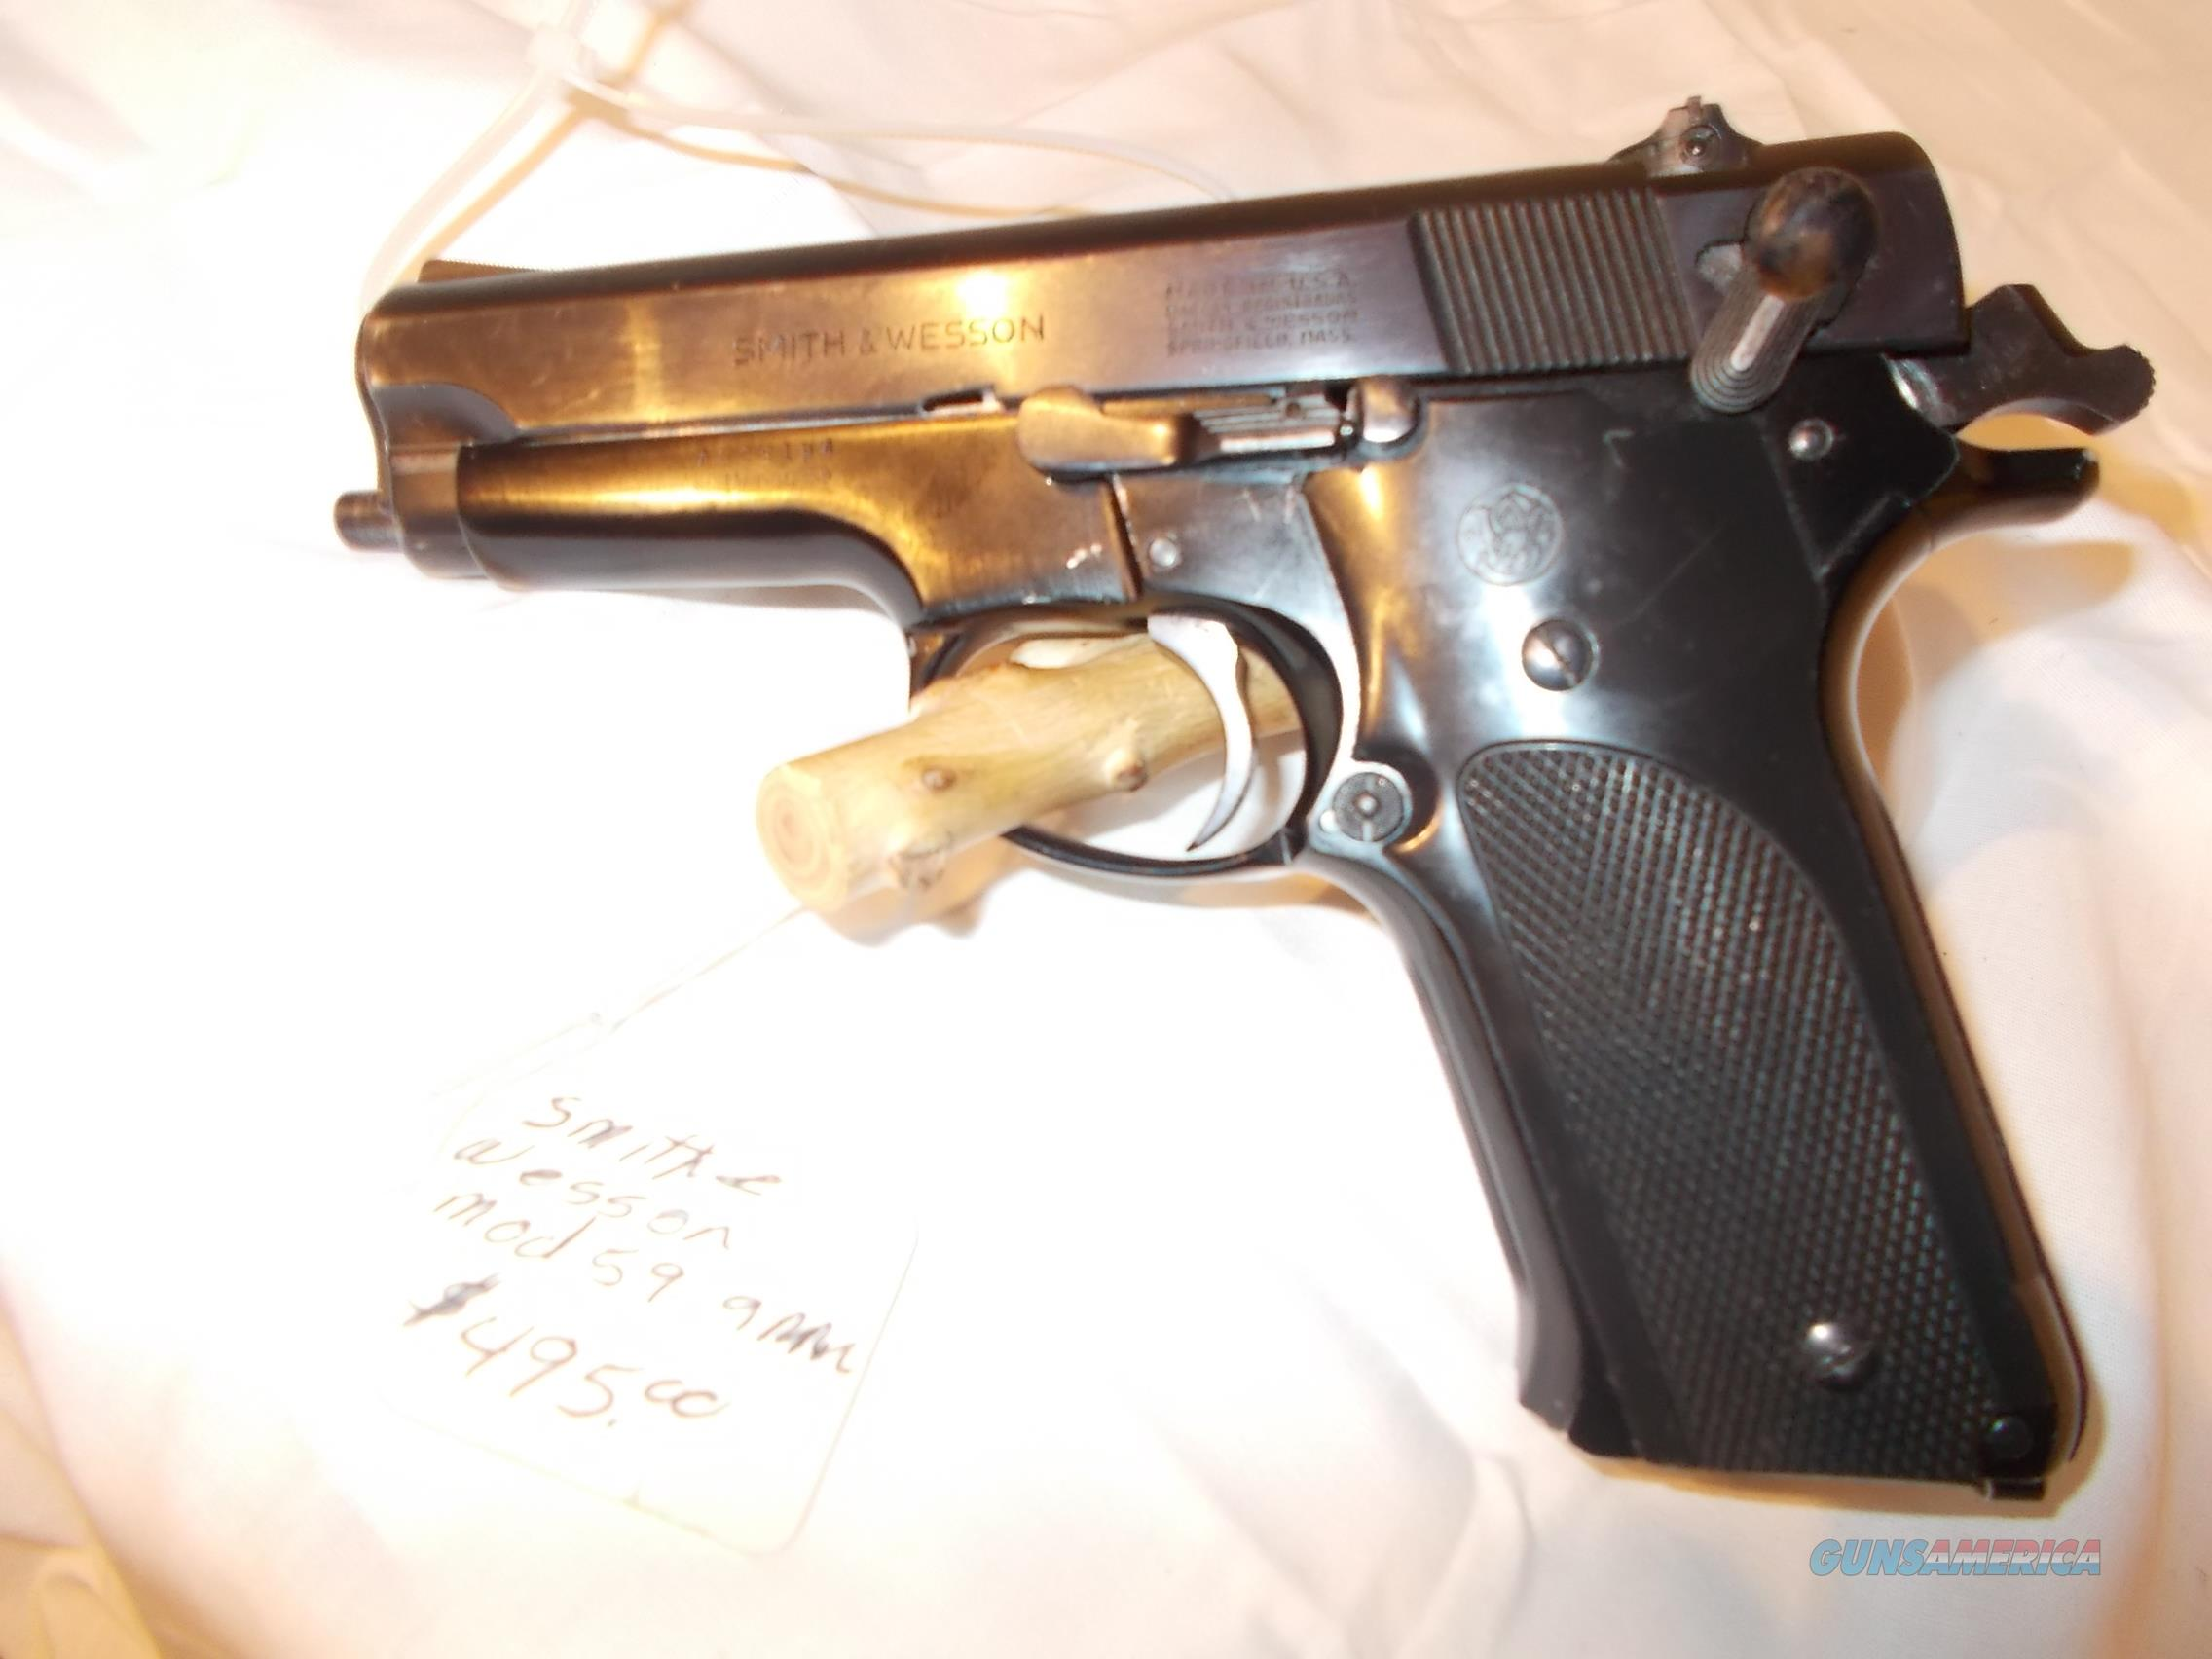 smith& wesson model 59 9mm  Guns > Pistols > Smith & Wesson Pistols - Autos > Steel Frame